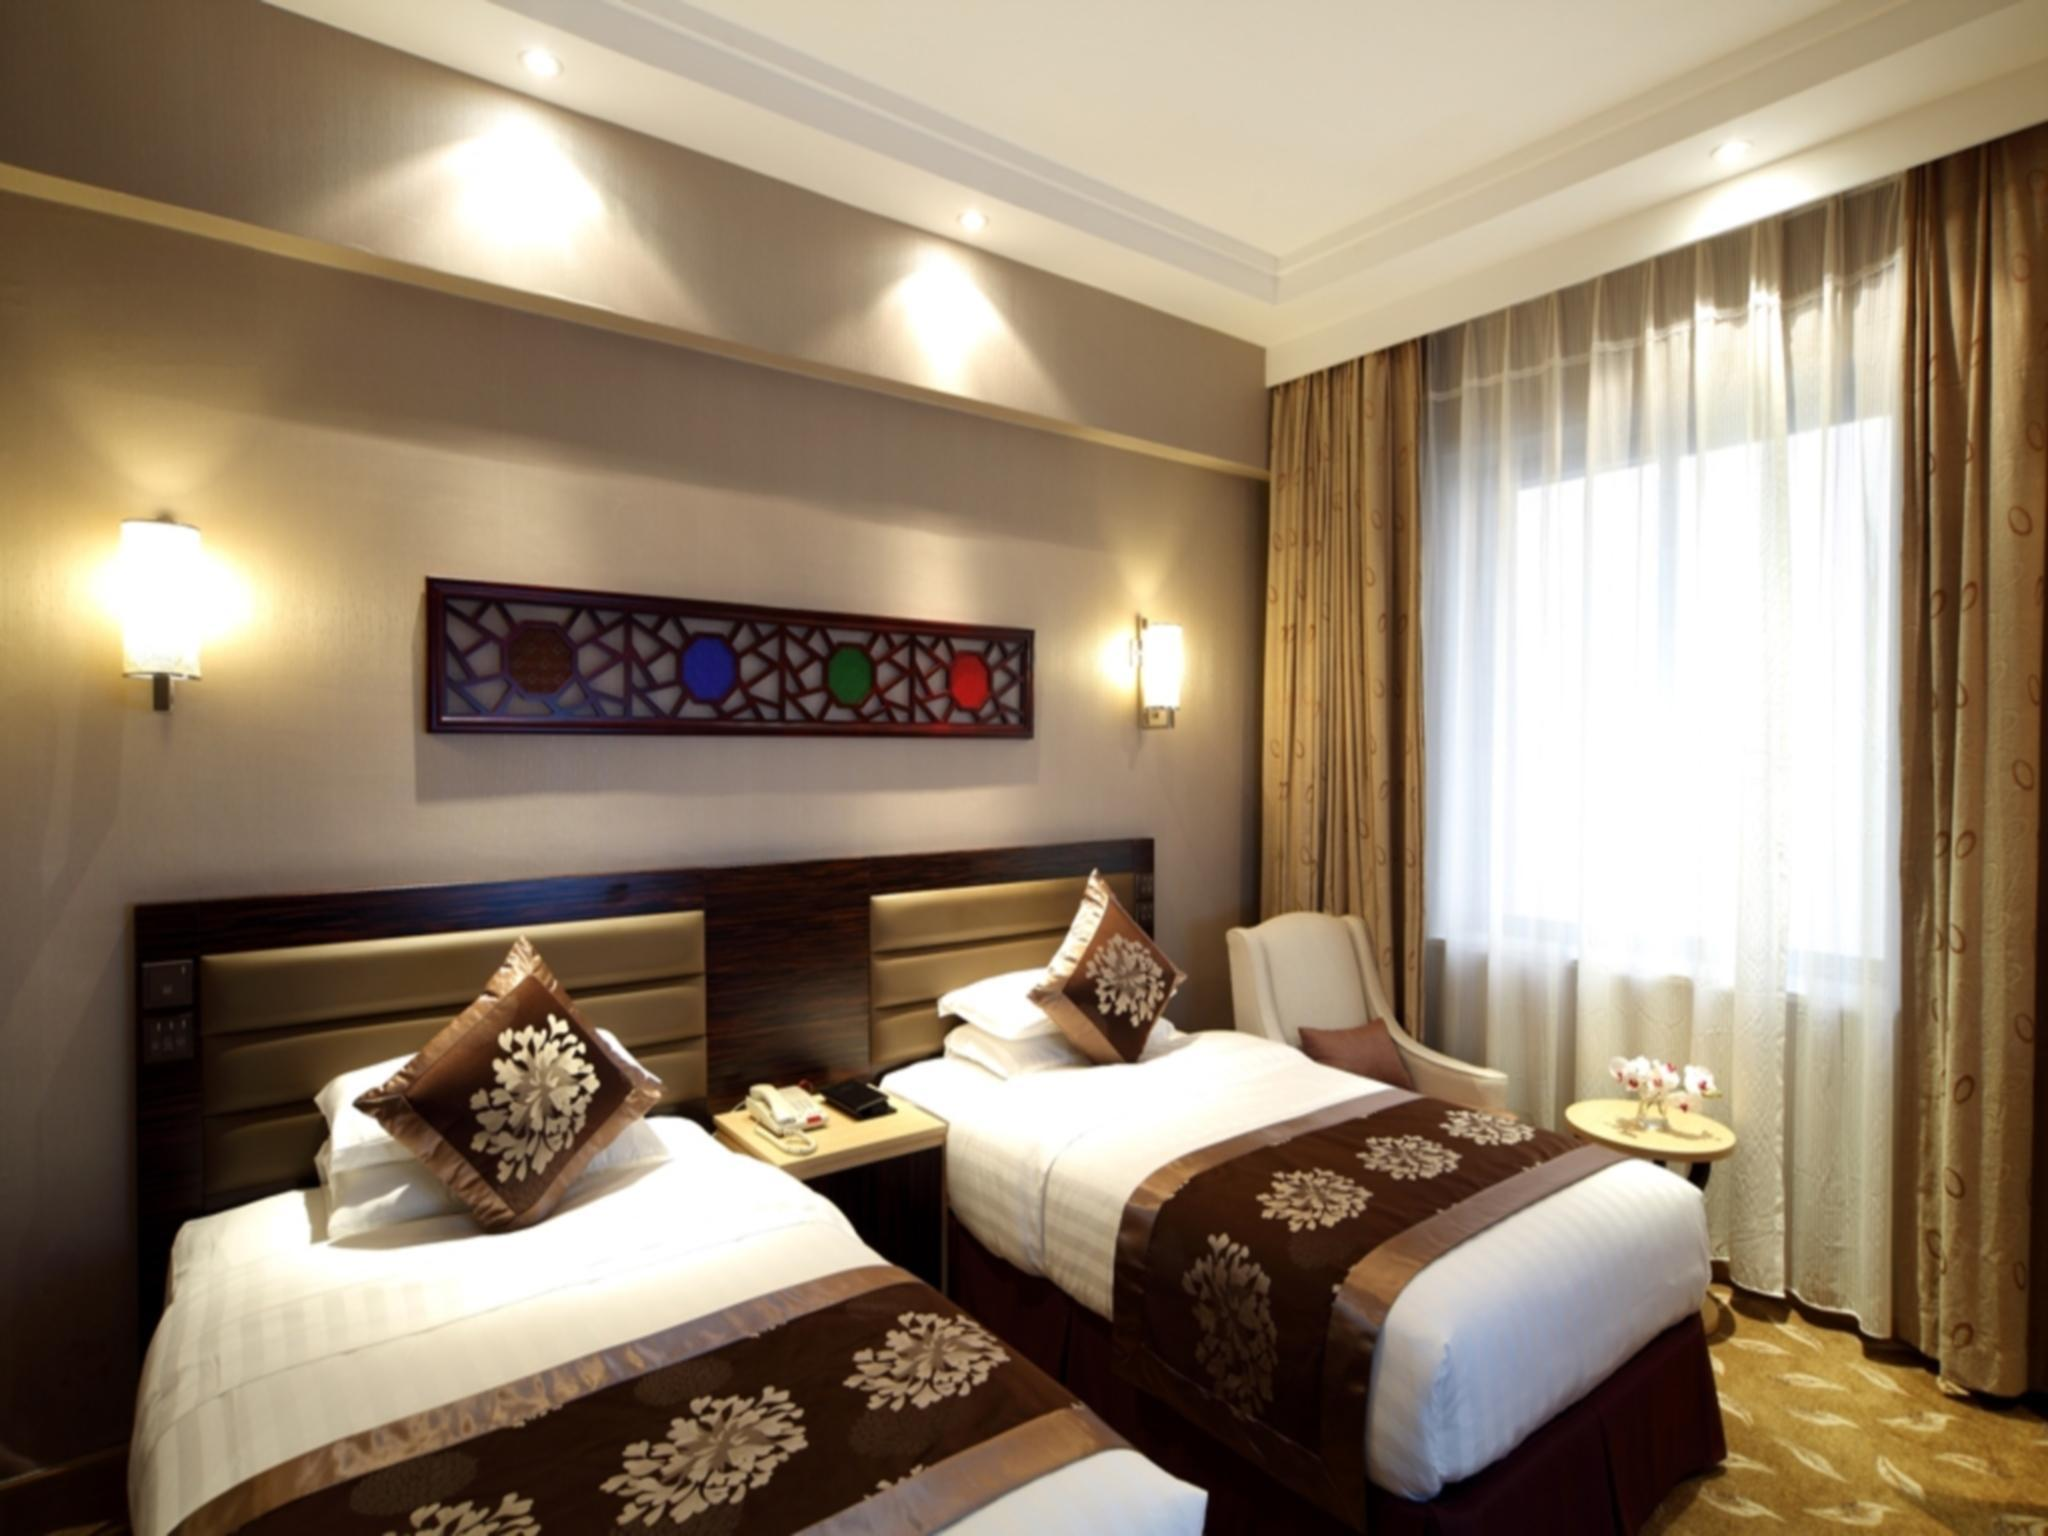 河景里程碑客房(高樓層) (Landmark Room River View High Floor)